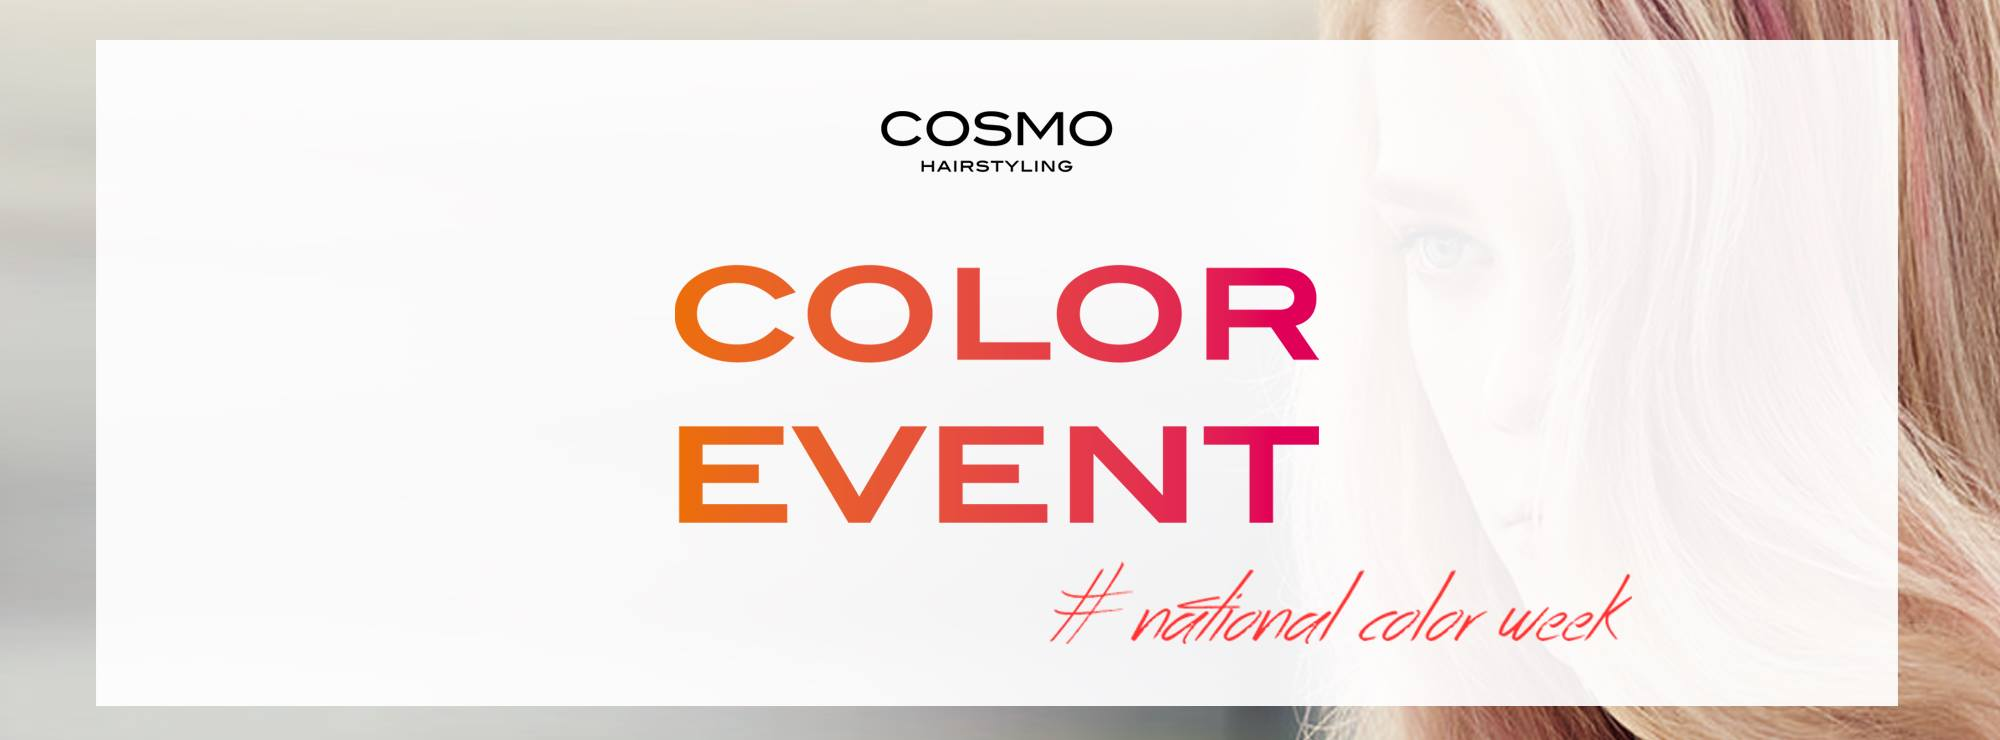 cosmo_color_event